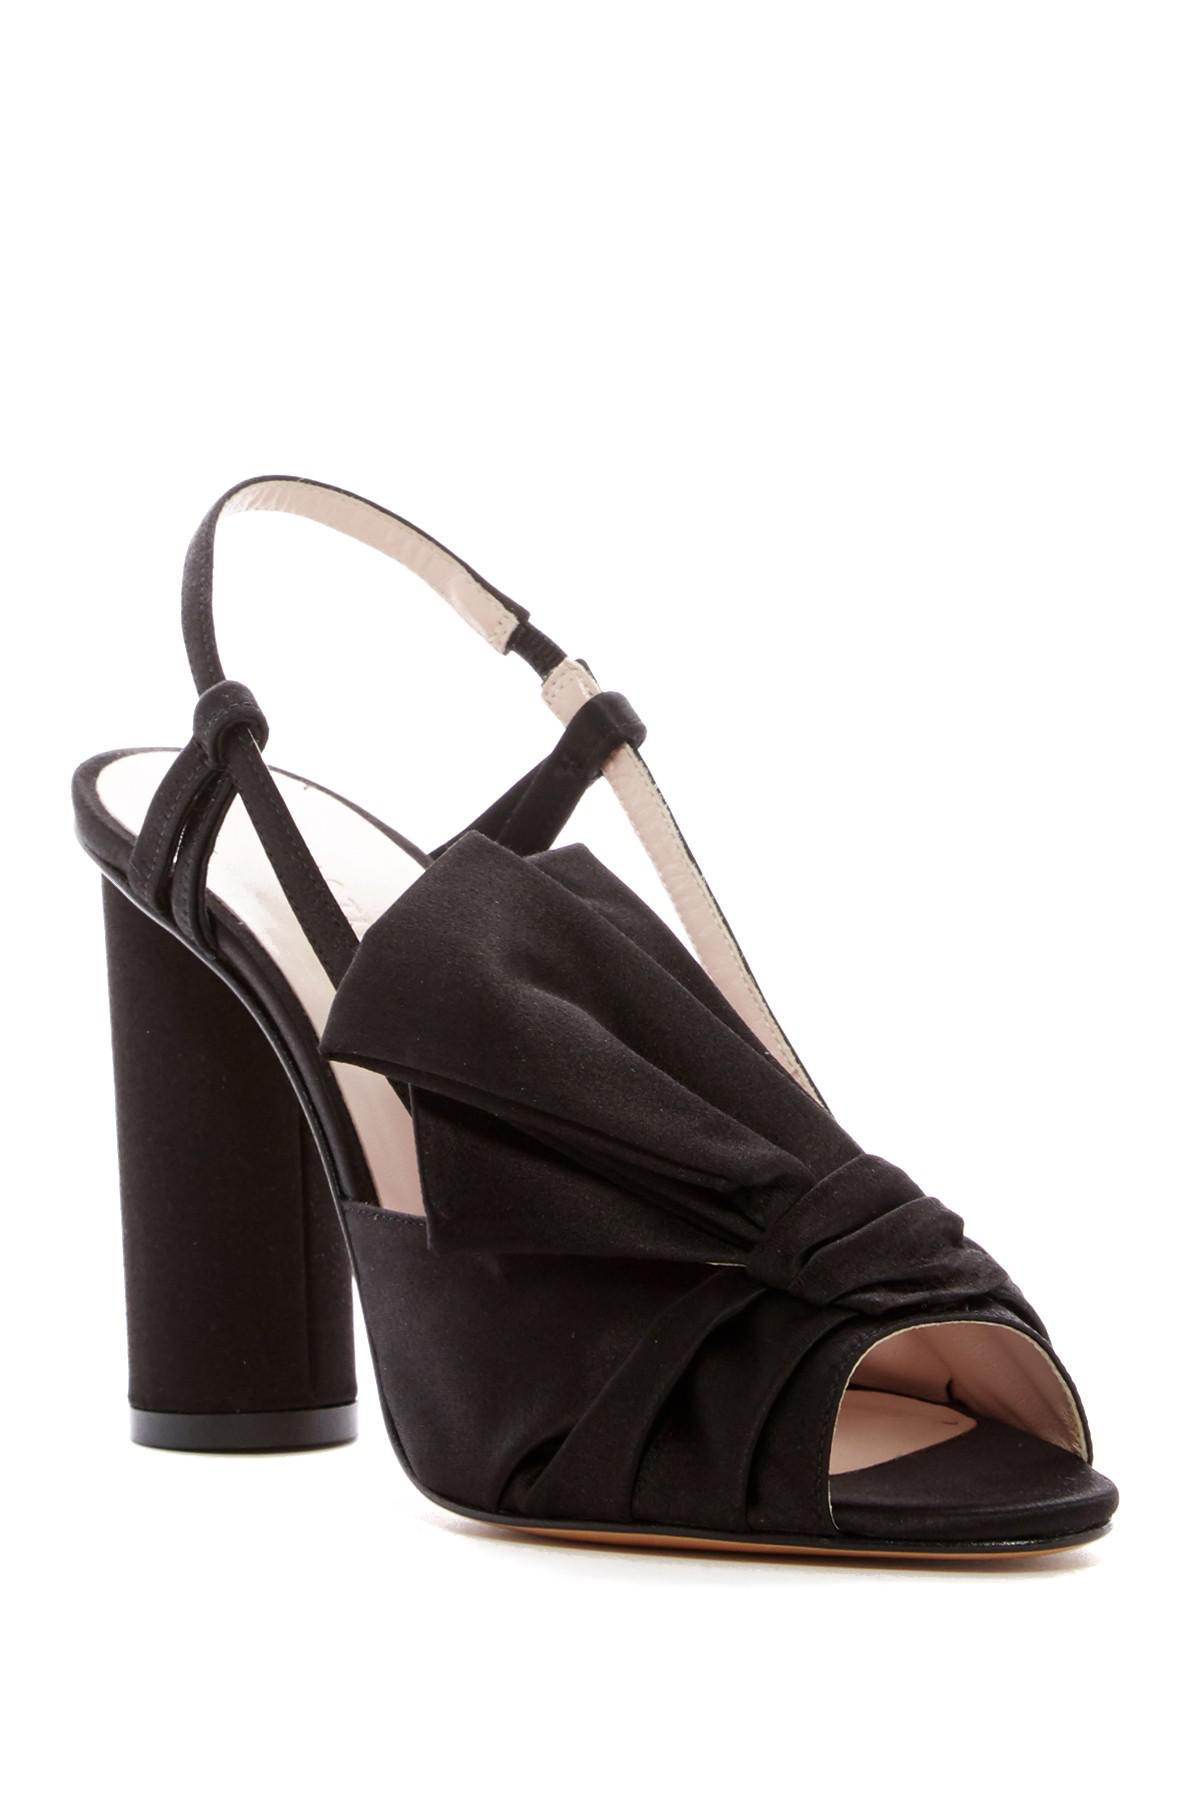 browse for sale Jill Stuart Patent leather Square-Toe Pumps cheap brand new unisex 8DLzq2pvgt